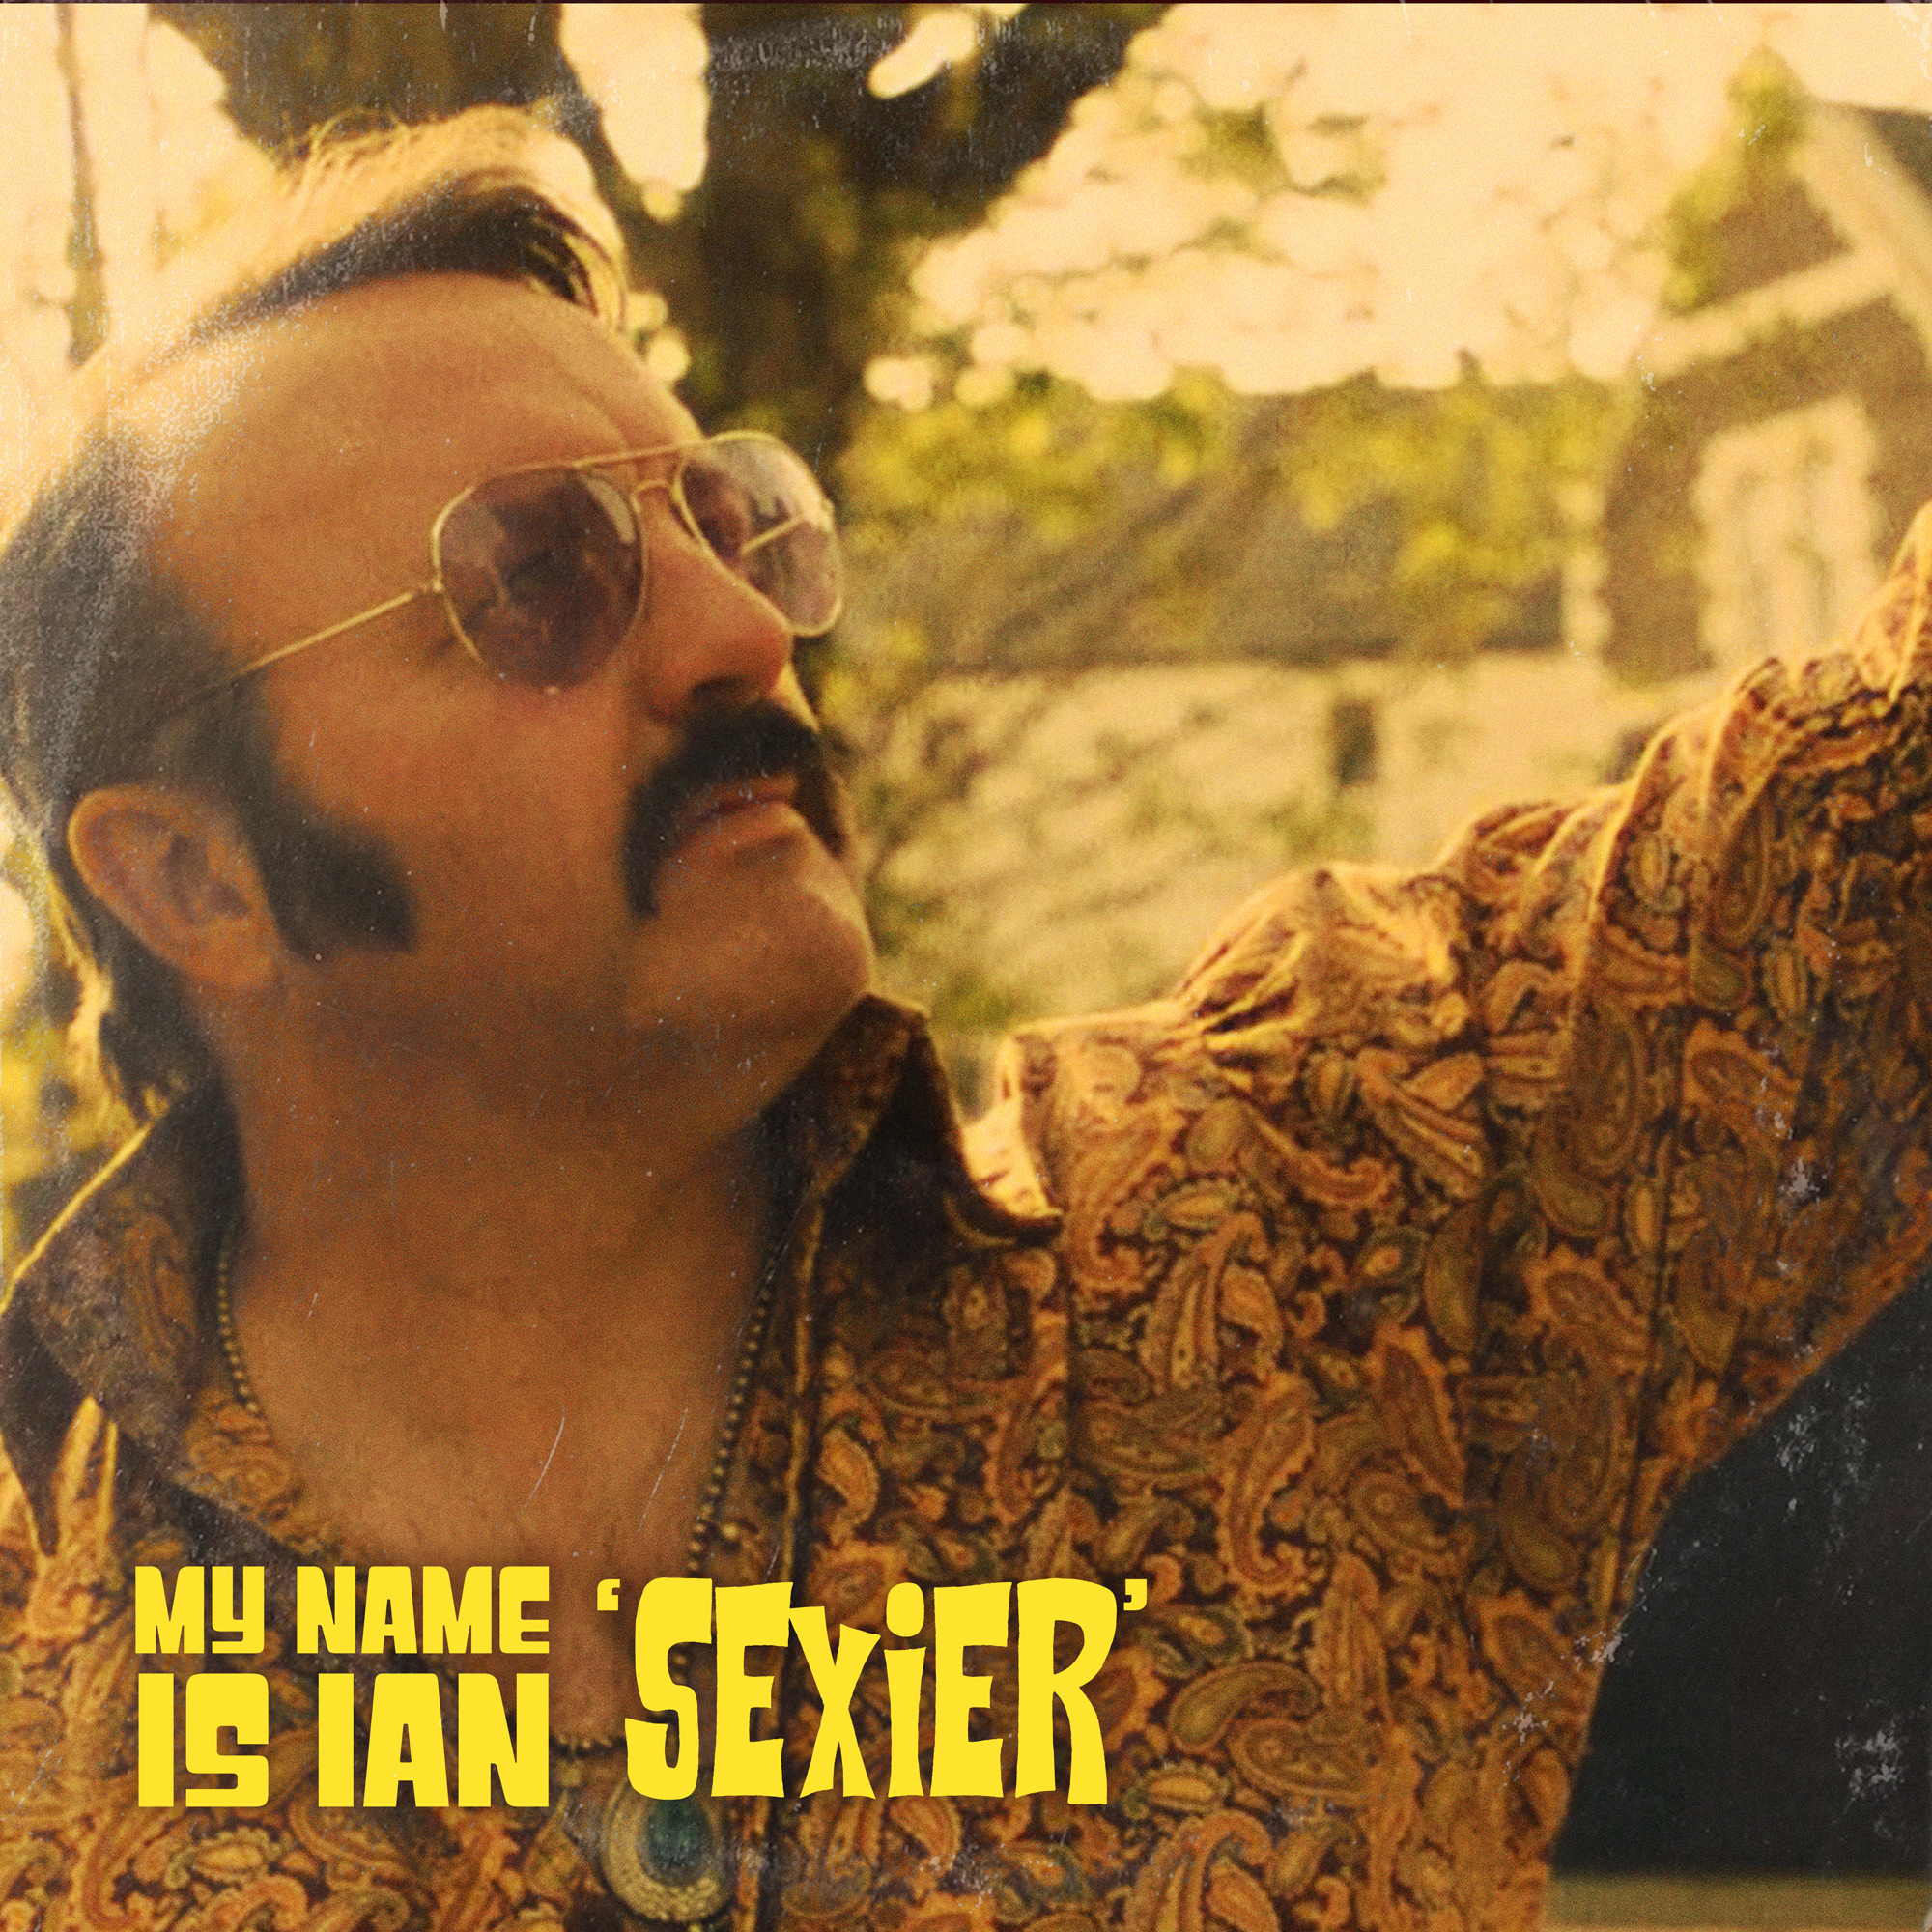 NEWS: My Name Is Ian share new video 'Sexier' starring Mike Bubbins and inspired by Procol Harum